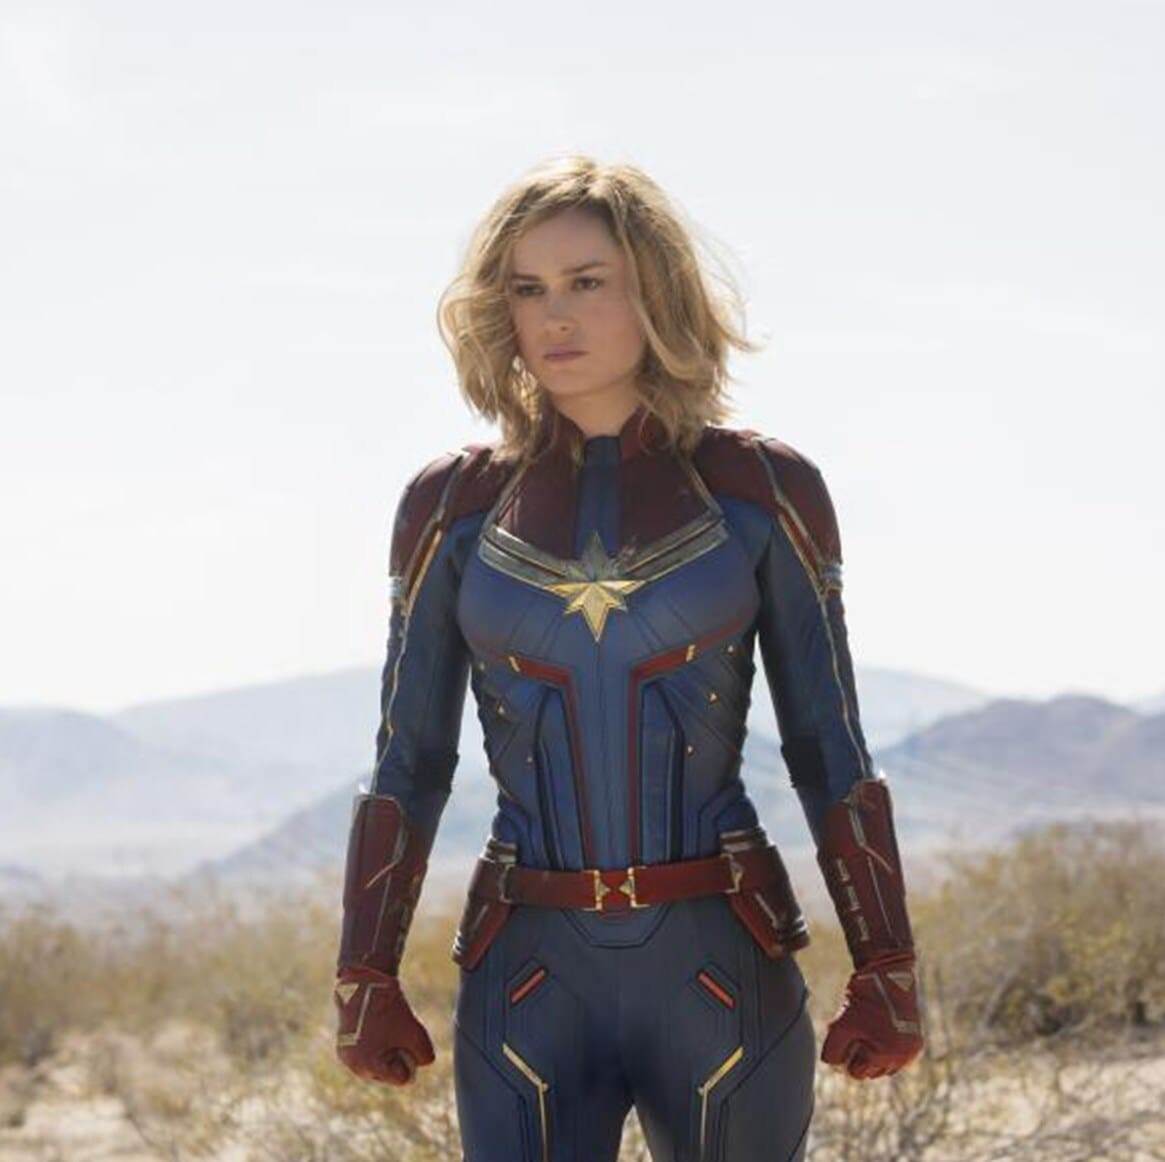 Brie Larson Didn't Feel Nervous on the Set of Captain Marvel